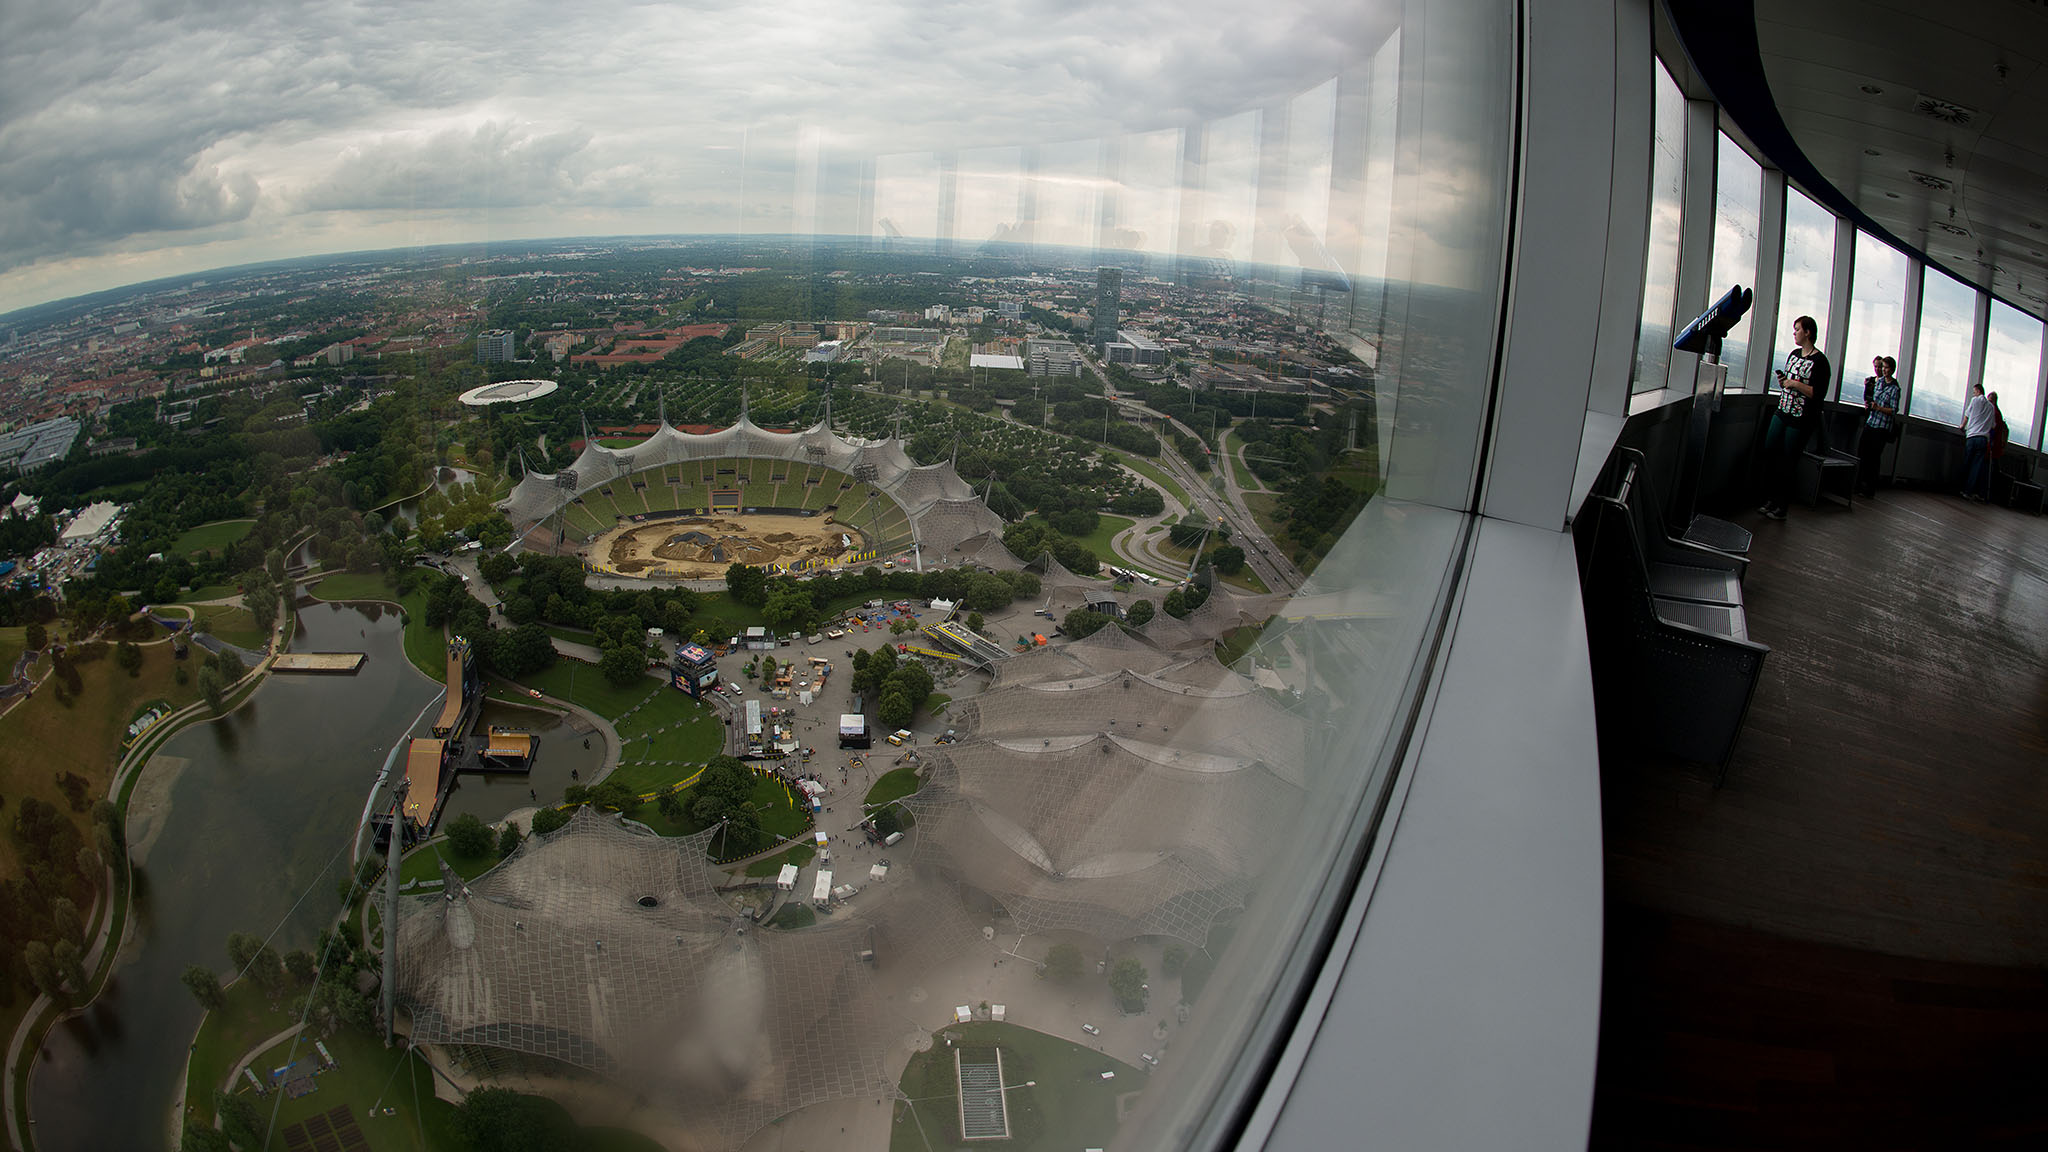 The Olympic Tower, beyond being architecturally interesting, is a useful orienting feature in the sprawling Olympiapark -- currently home to X Games Munich. Its glass-enclosed observation deck assures a panoramic view of the entire city, with outlines of prominent urban and geographic landmarks etched on the windows to help visitors get their bearings and discover new places to add to their itineraries.